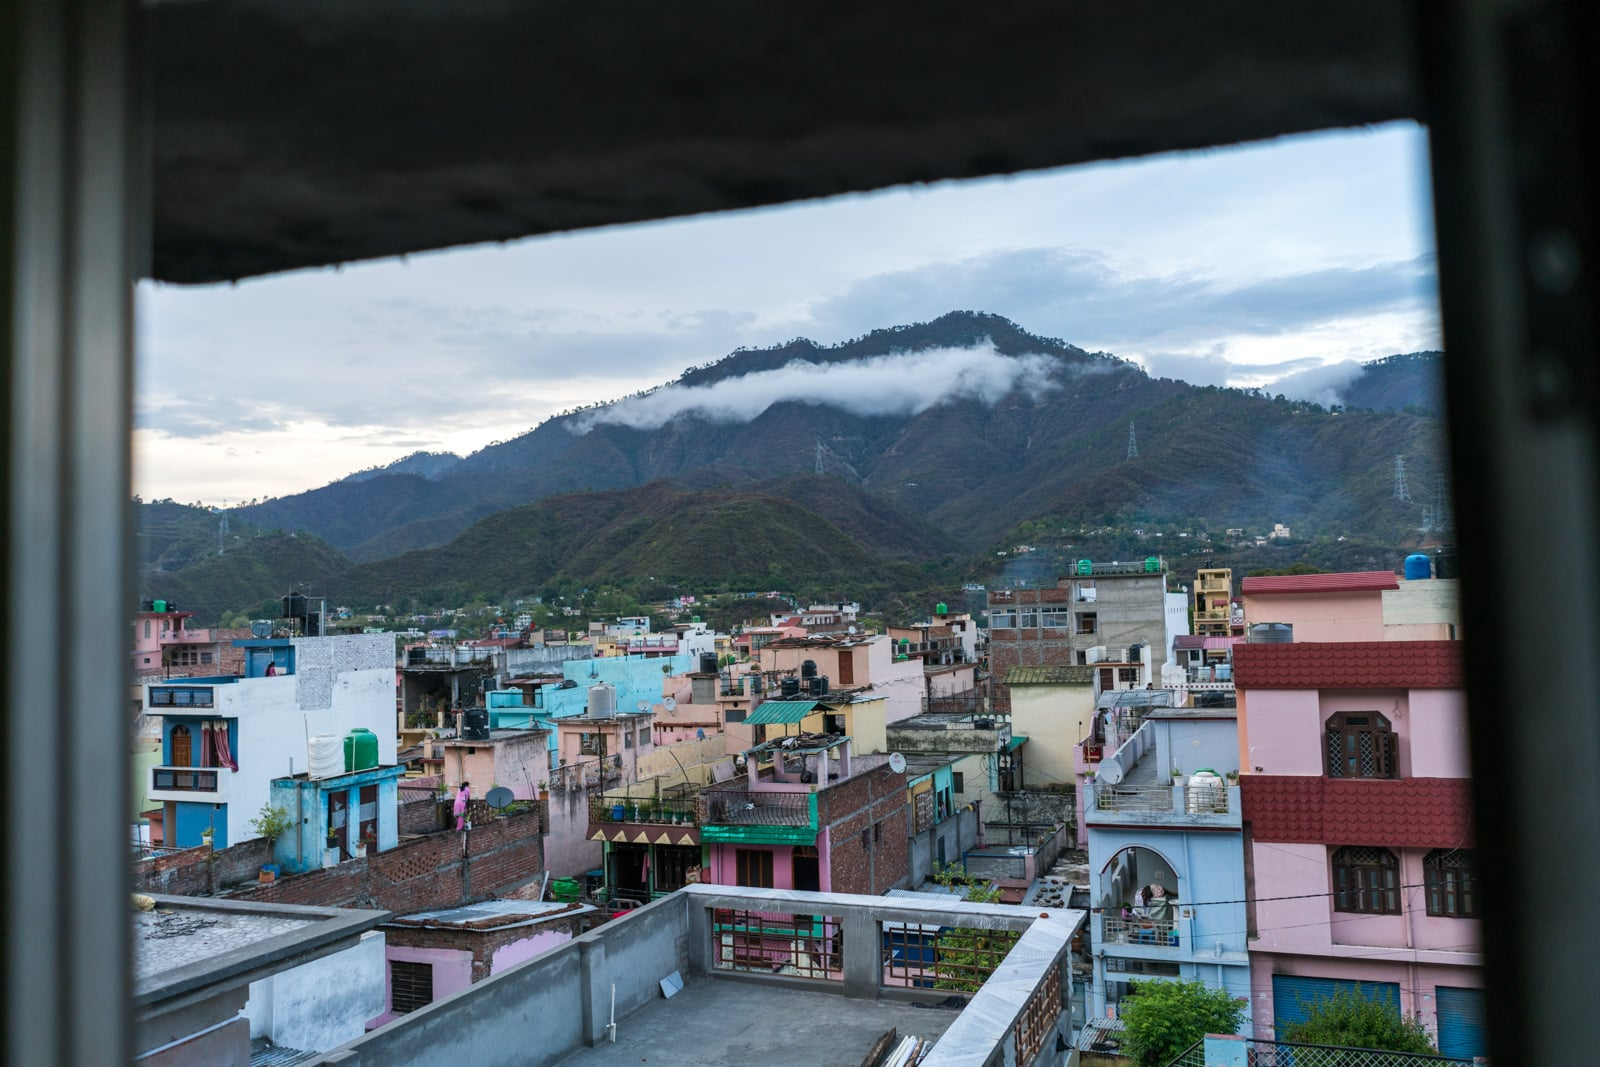 How to reach Srinagar from RIshikesh - View of Srinagar, Uttarakhand from a hotel room - Lost With Purpose travel blog